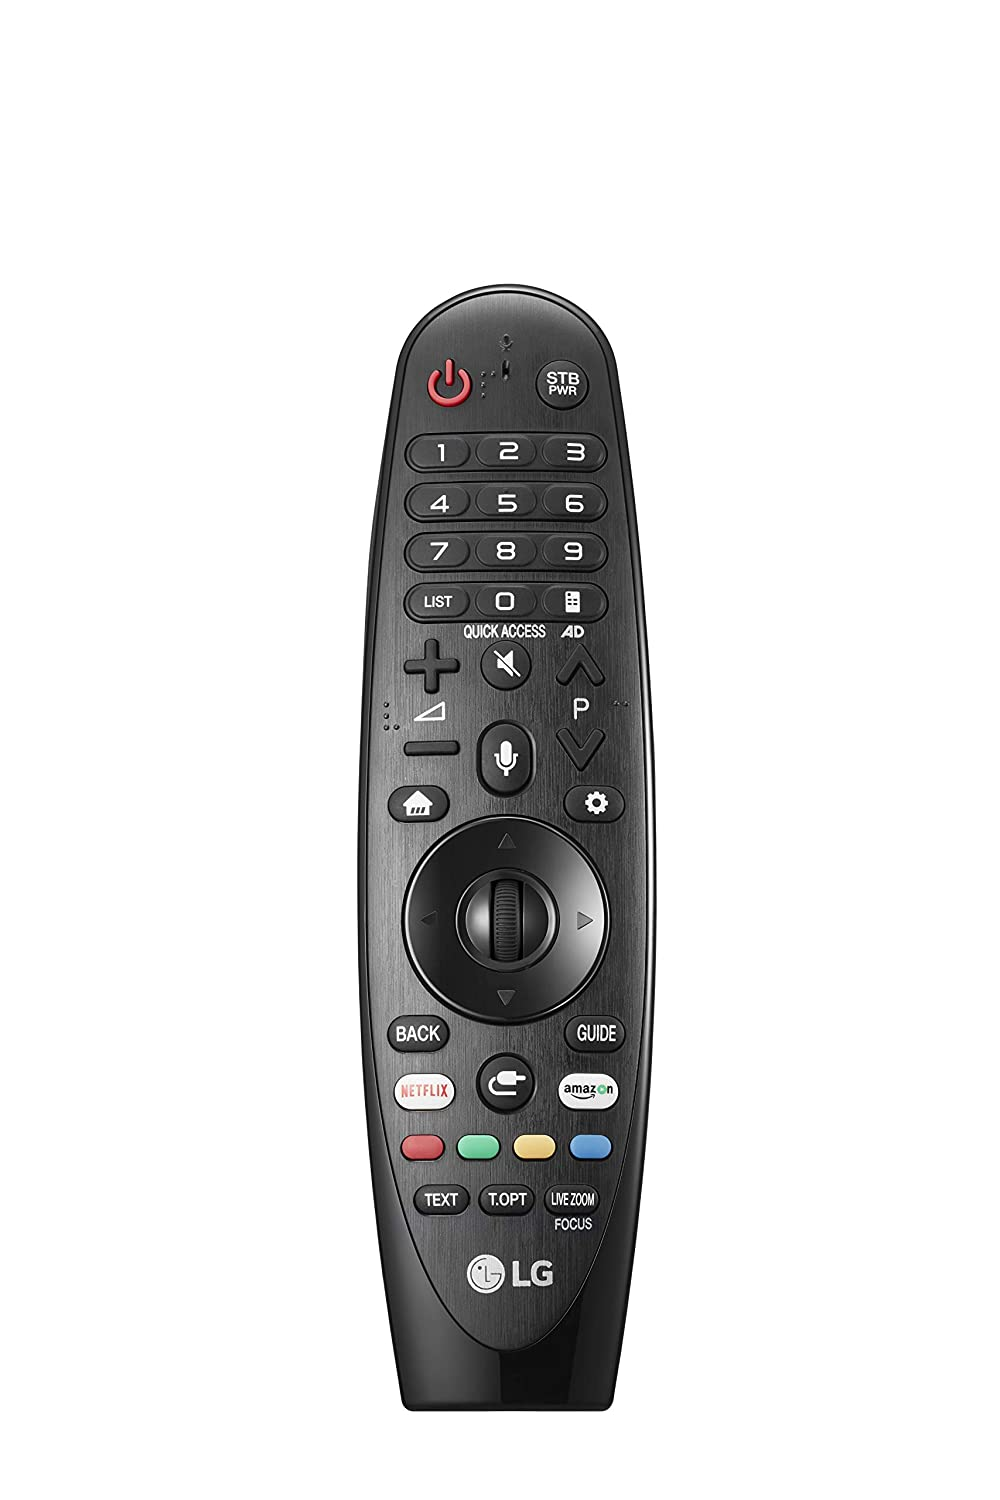 daa091d9c LG Magic Control AN-MR18BA - Mando a Distancia (Reconocimiento de Voz,  apunta y navega, Rueda de Scroll, Botones Netflix y Amazon, Teclado  numérico) Color ...